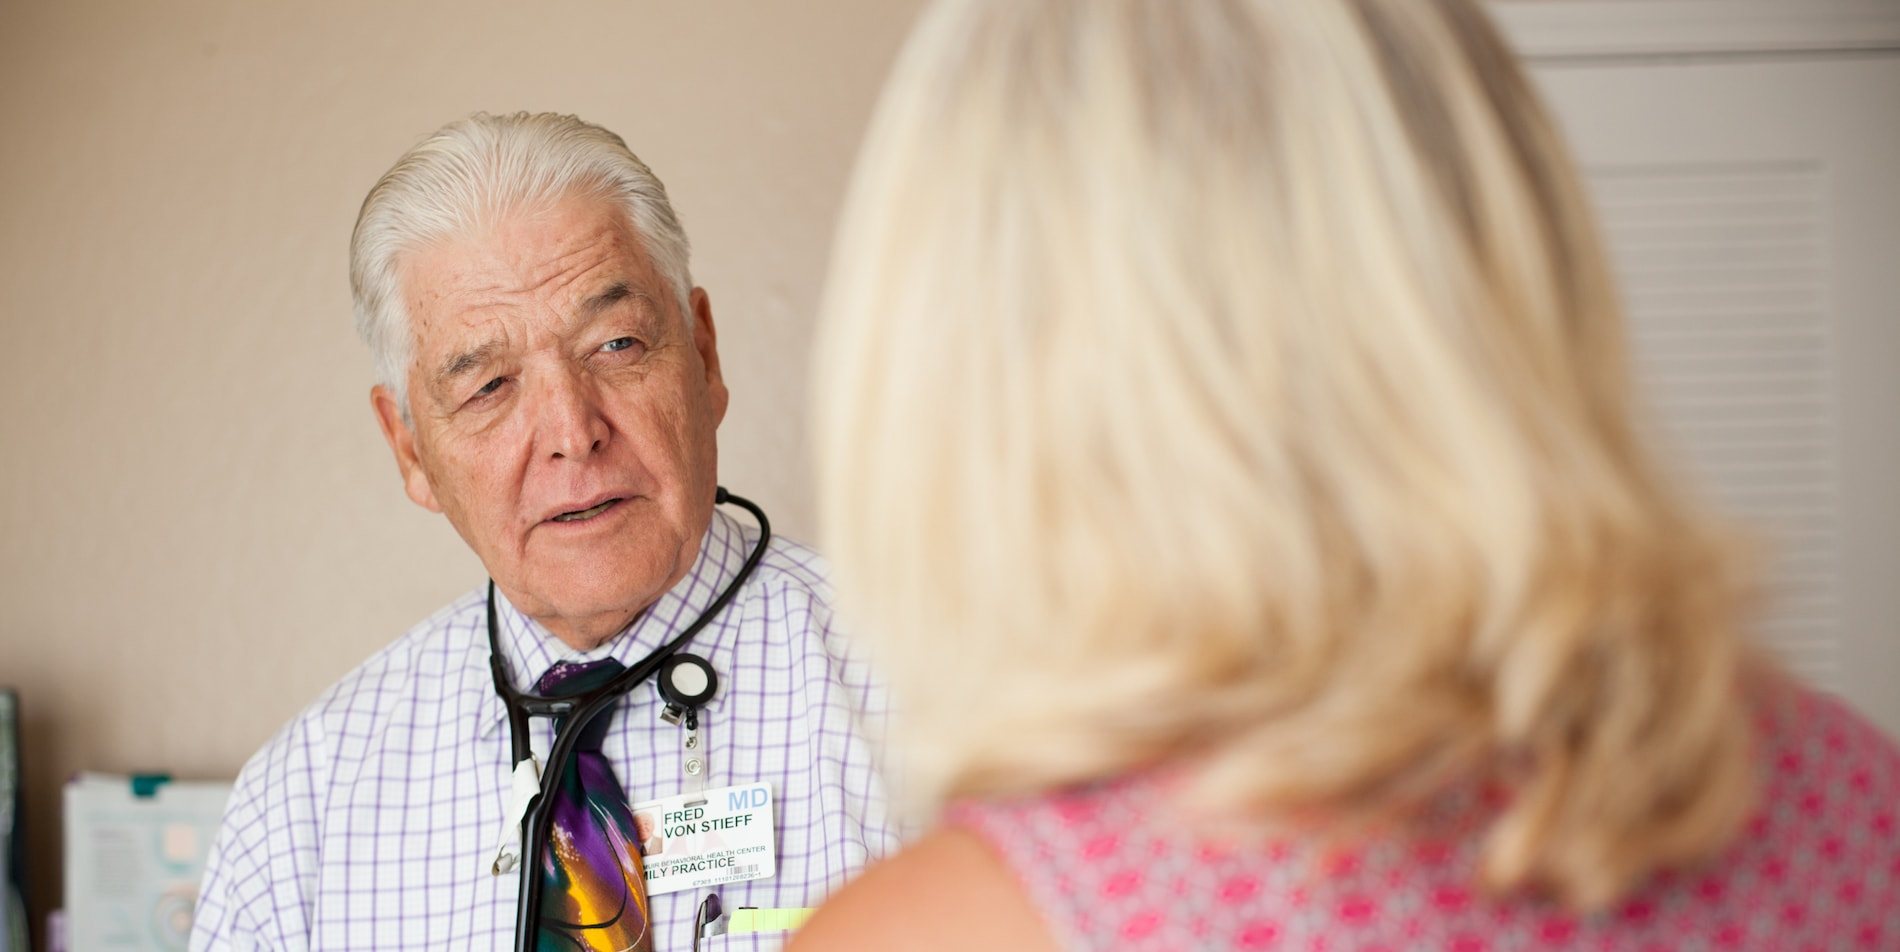 Concord Addiction Physicians - Image of Dr. Von Stieff with a patient